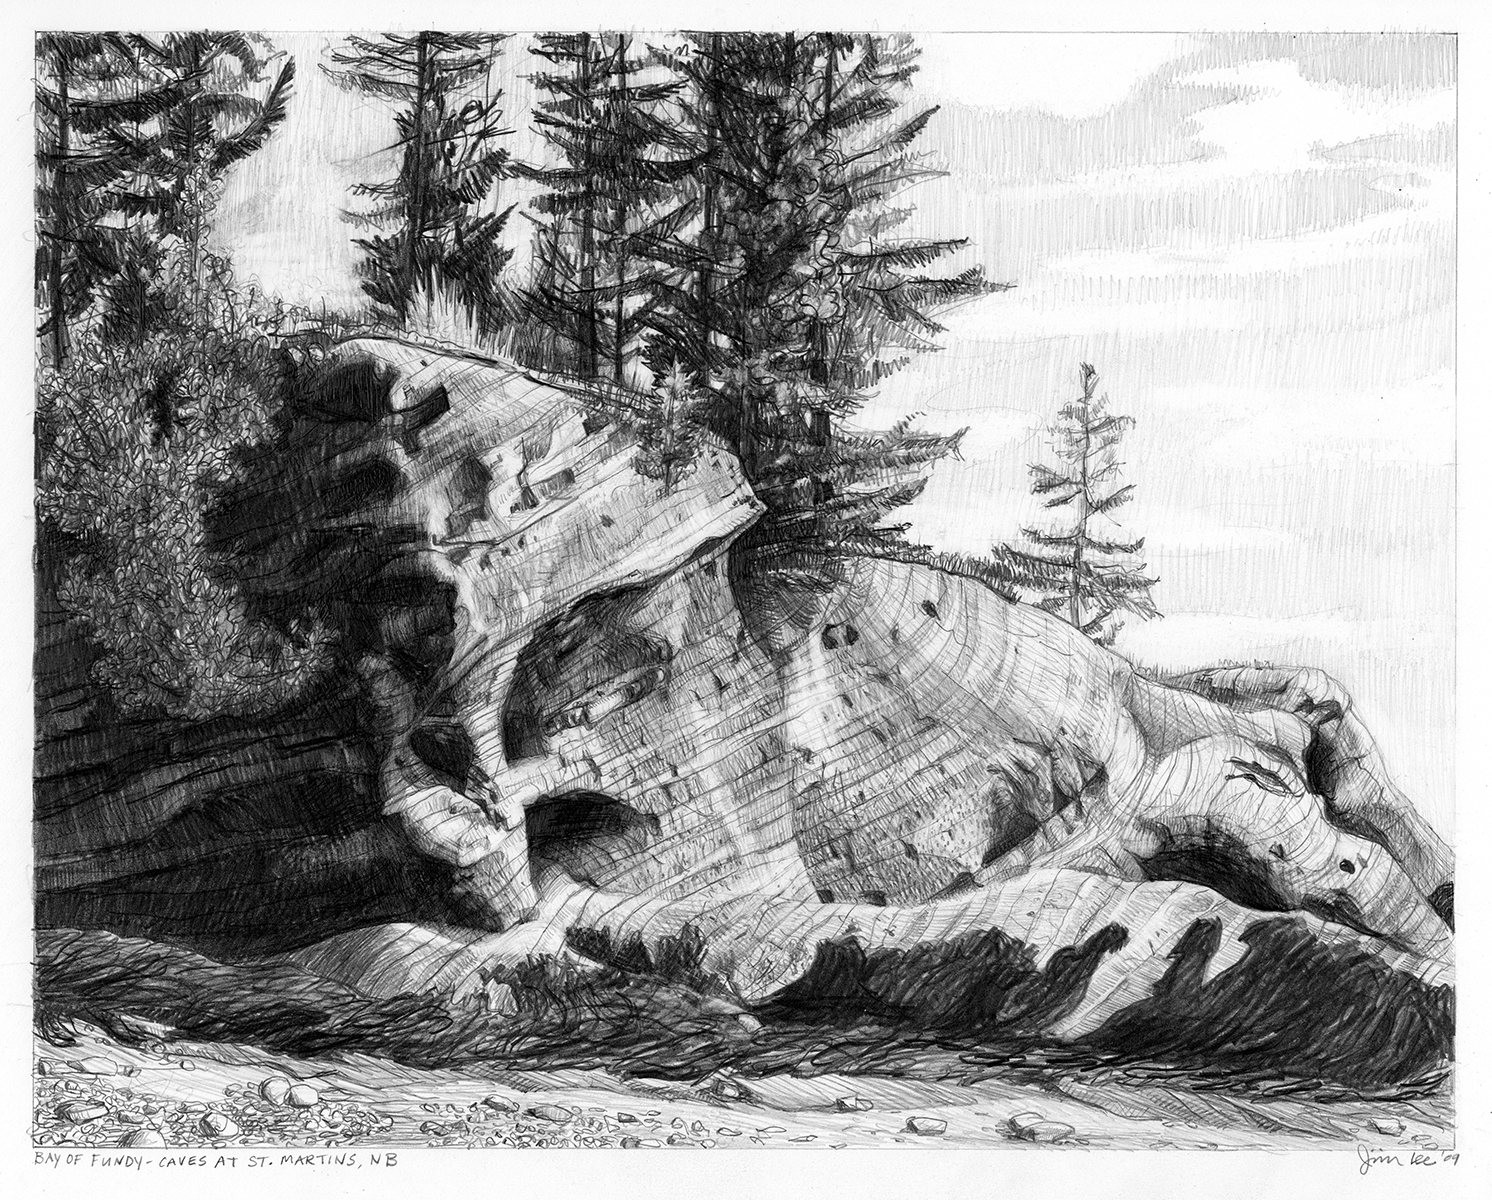 "Bay of Fundy-Cave at St. Martins, NB   Pencil, 15x22"", 2009"